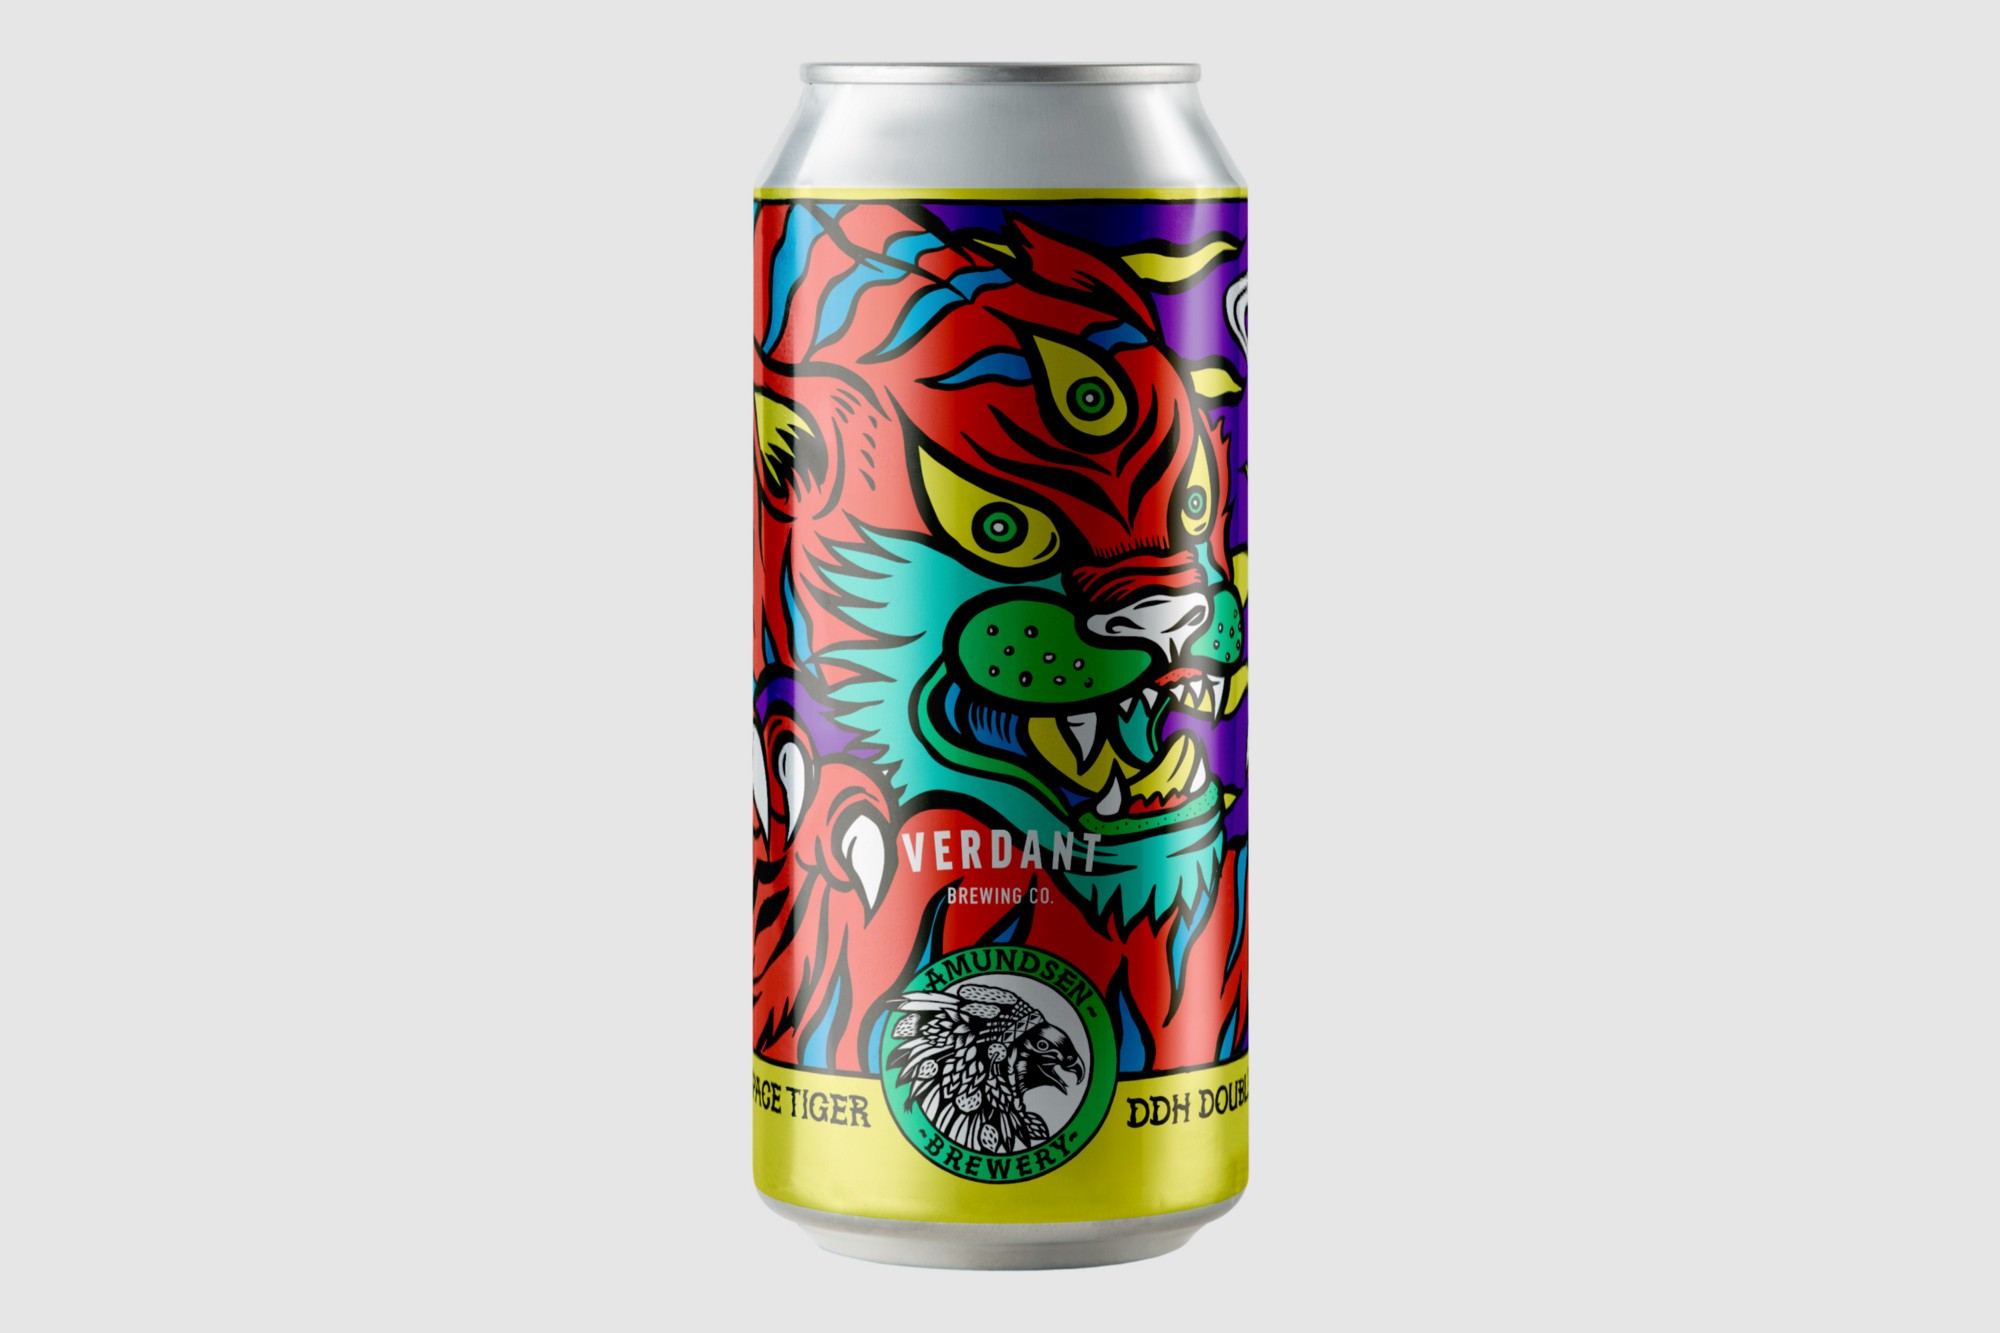 2018's best craft beer label designs.